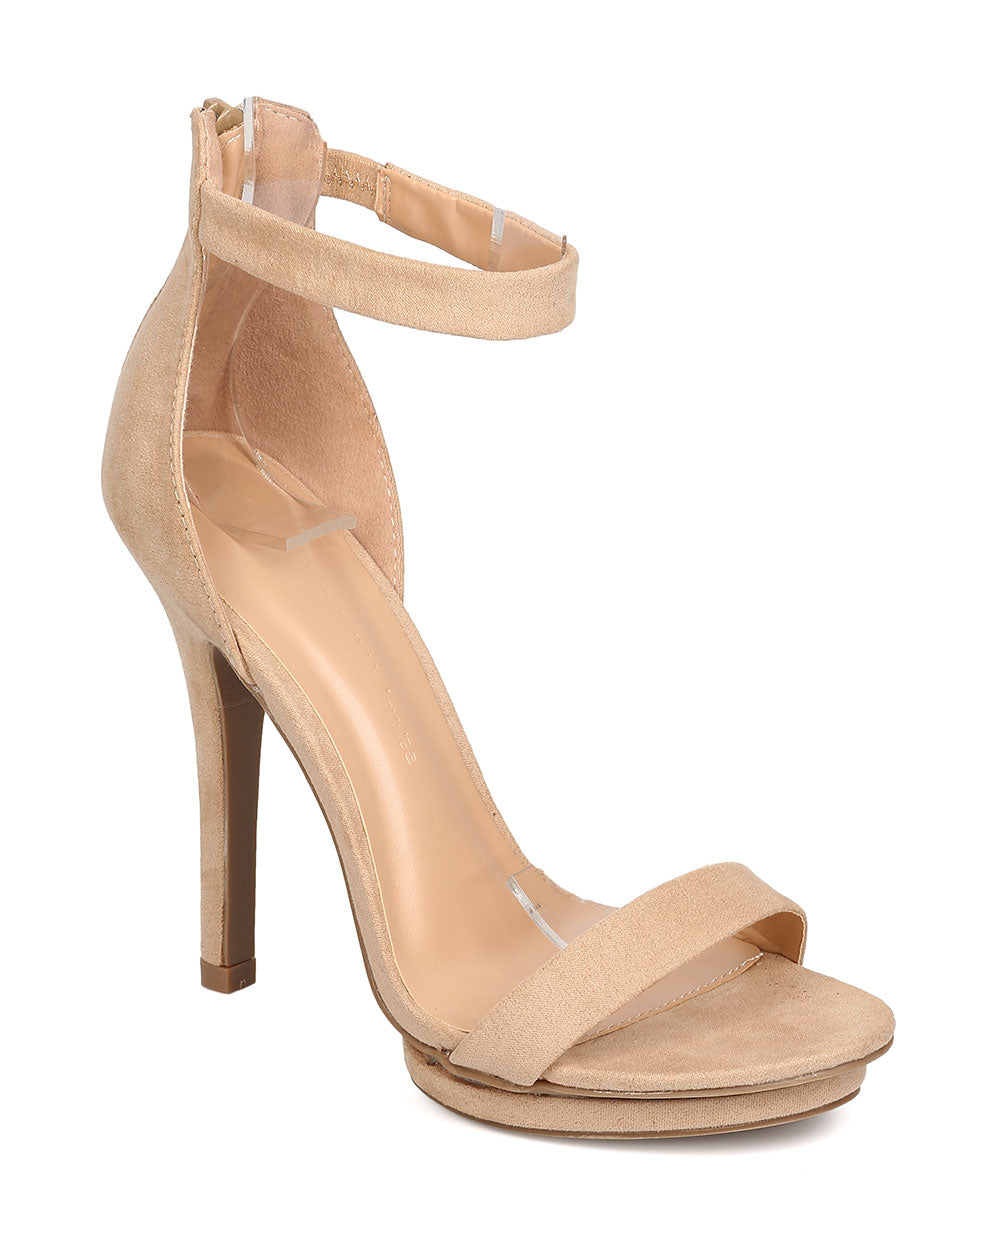 Wild Diva Amy-01 Natural Open Toe Ankle